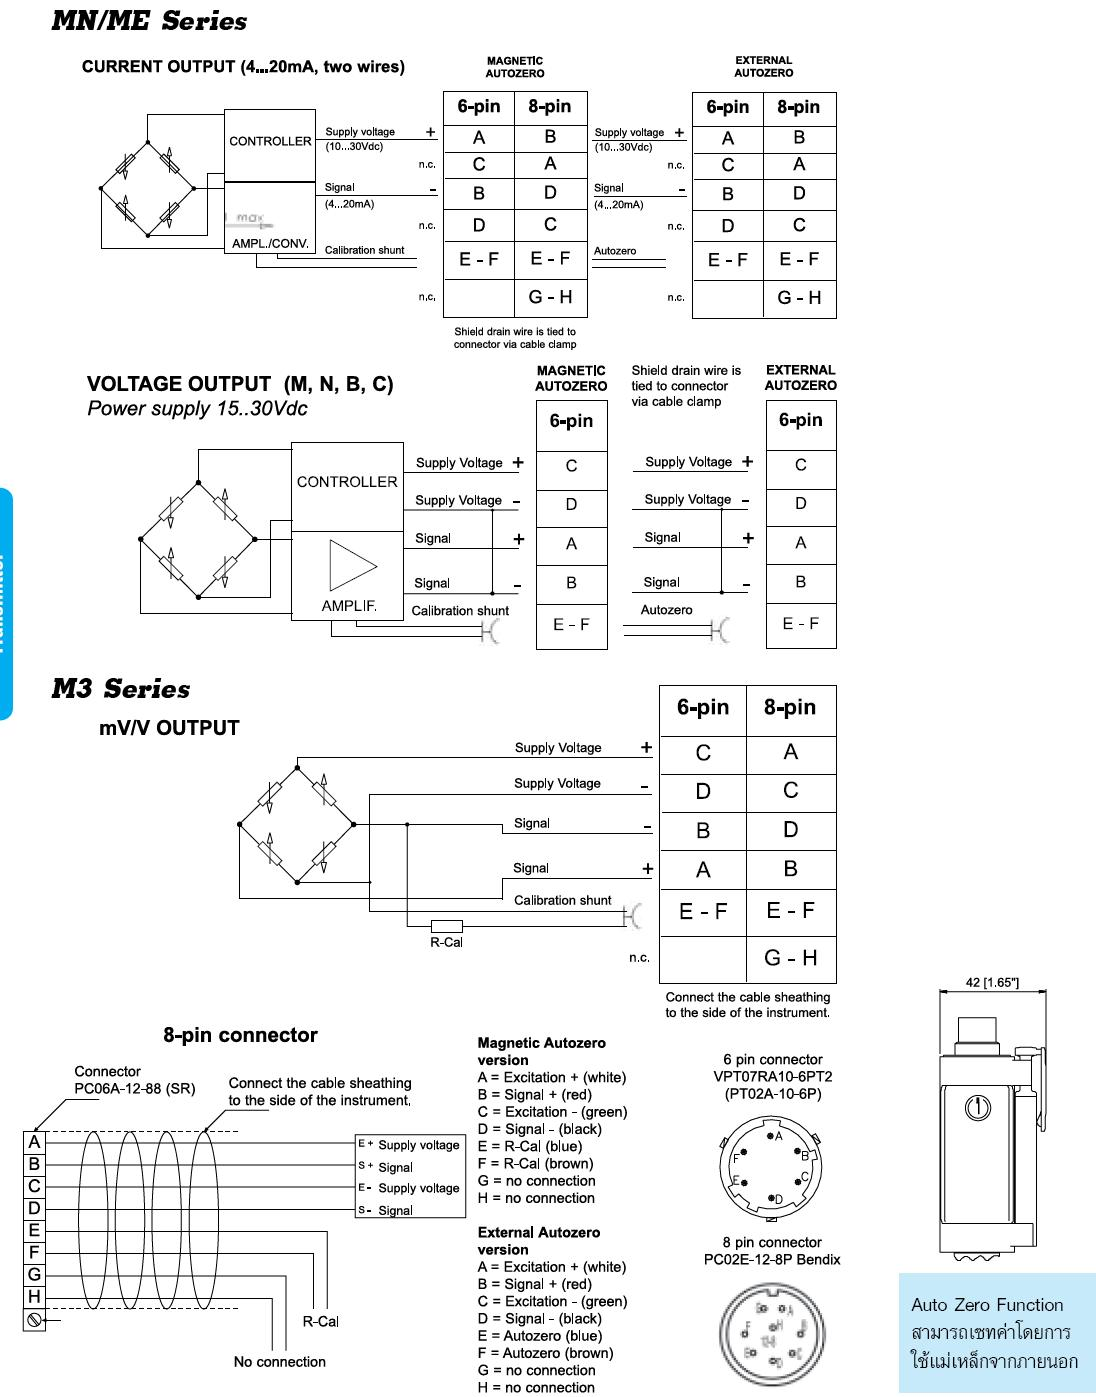 M Series Melt Pressure Transducer 3?resize\=665%2C848 gefran pressure transducer wiring diagram gefran wiring diagrams  at bayanpartner.co